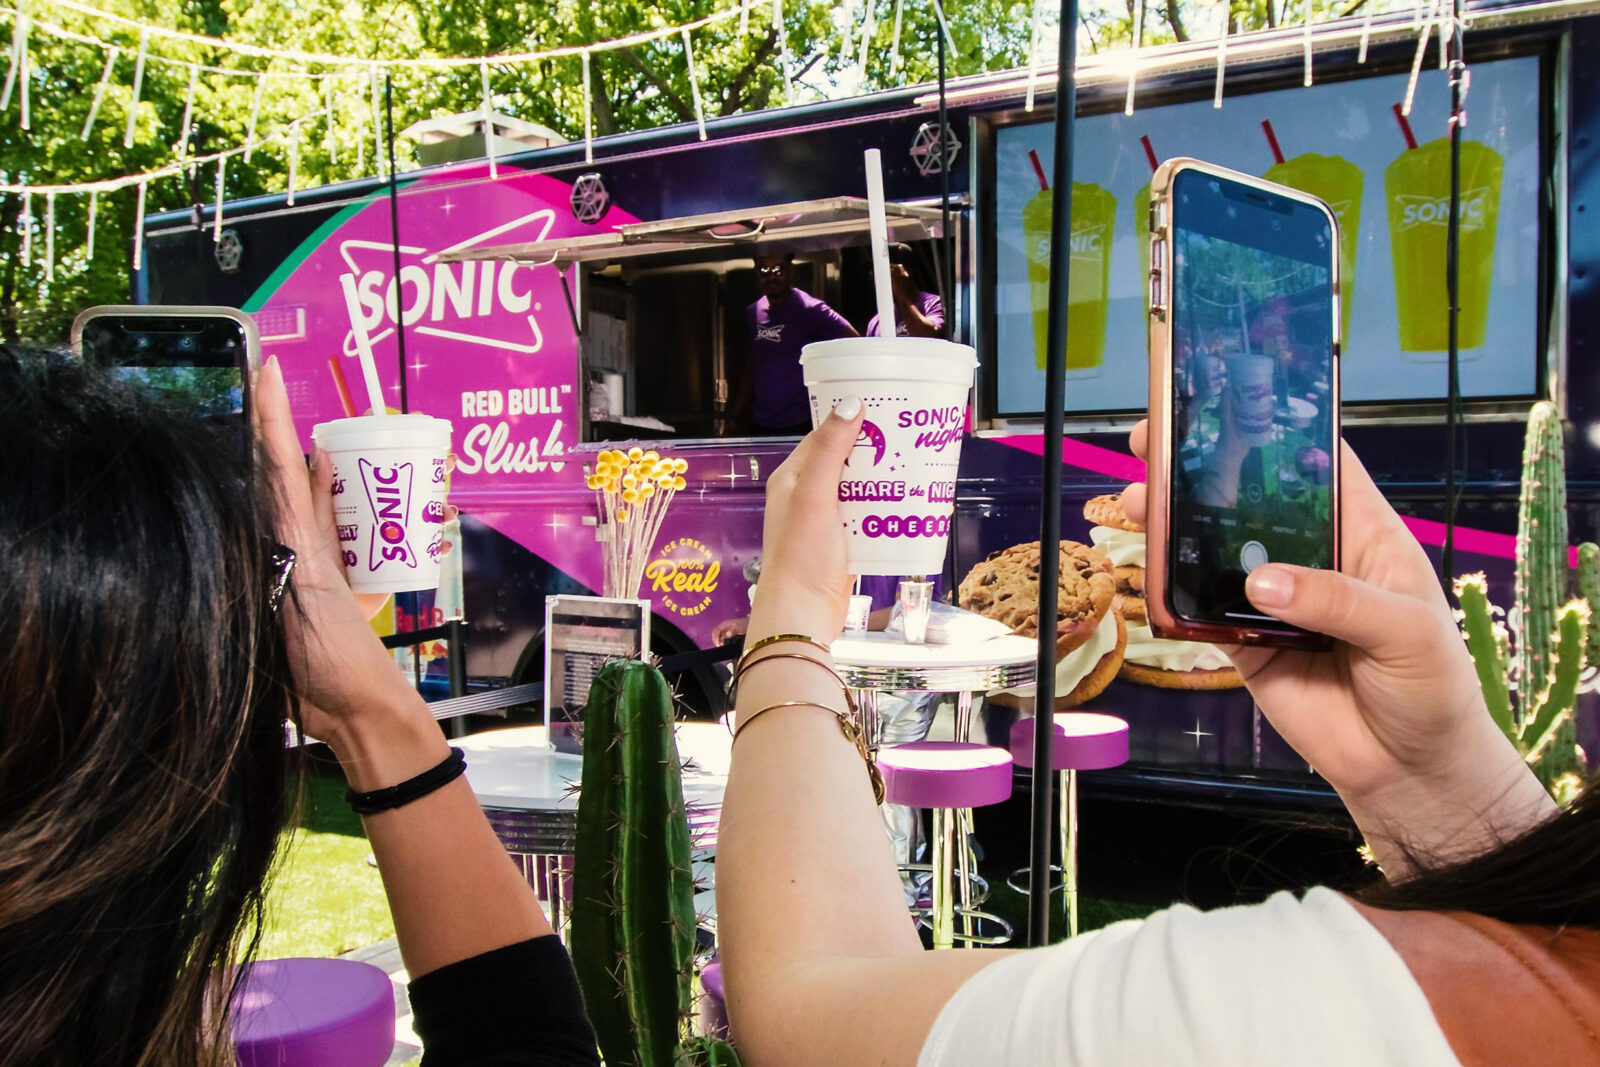 customers taking photos of their food at sonic block party marketing agency event